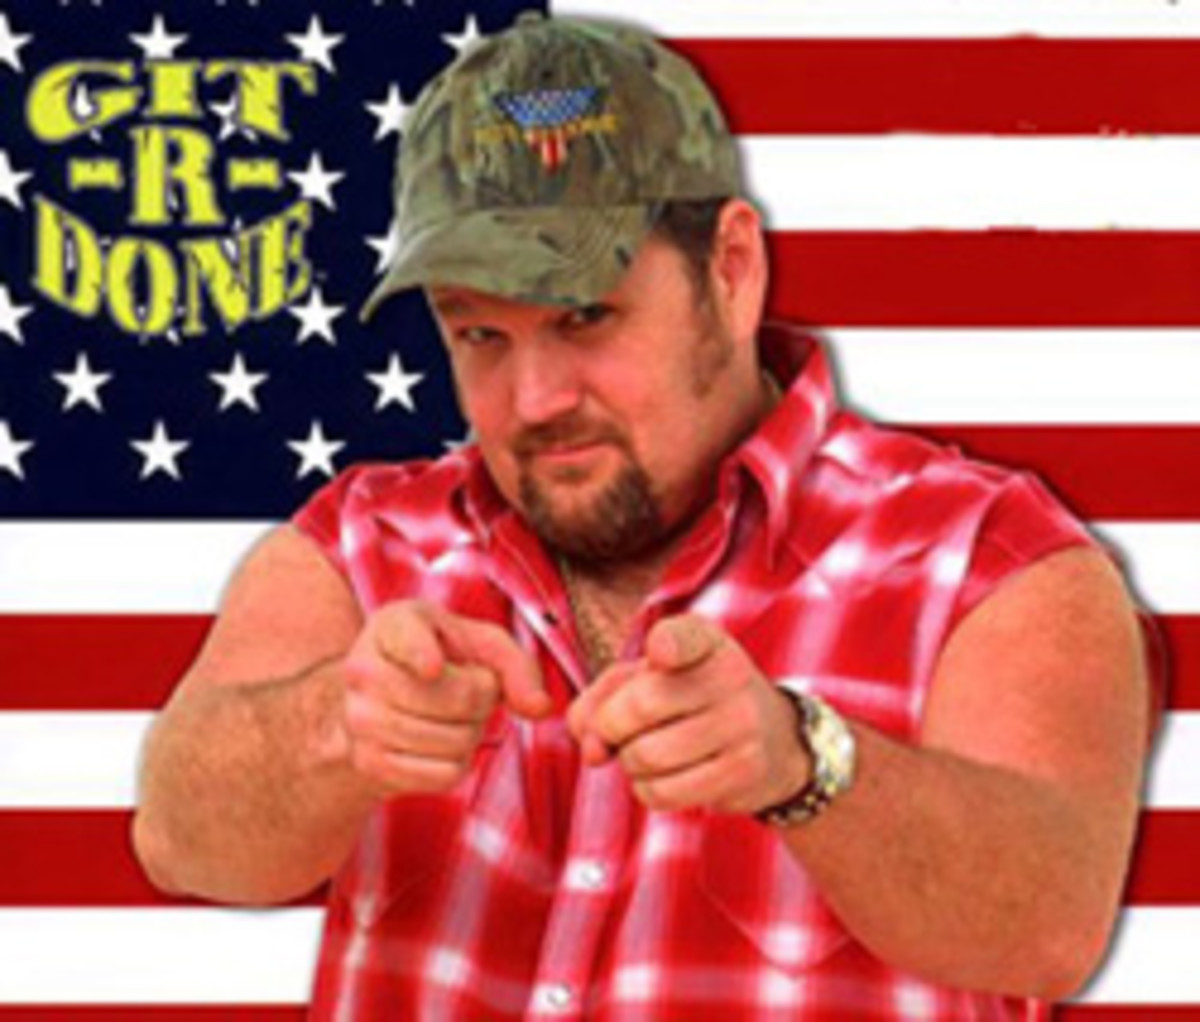 """Git R' Done!"" As Quoted By Larry, The Cable Guy."